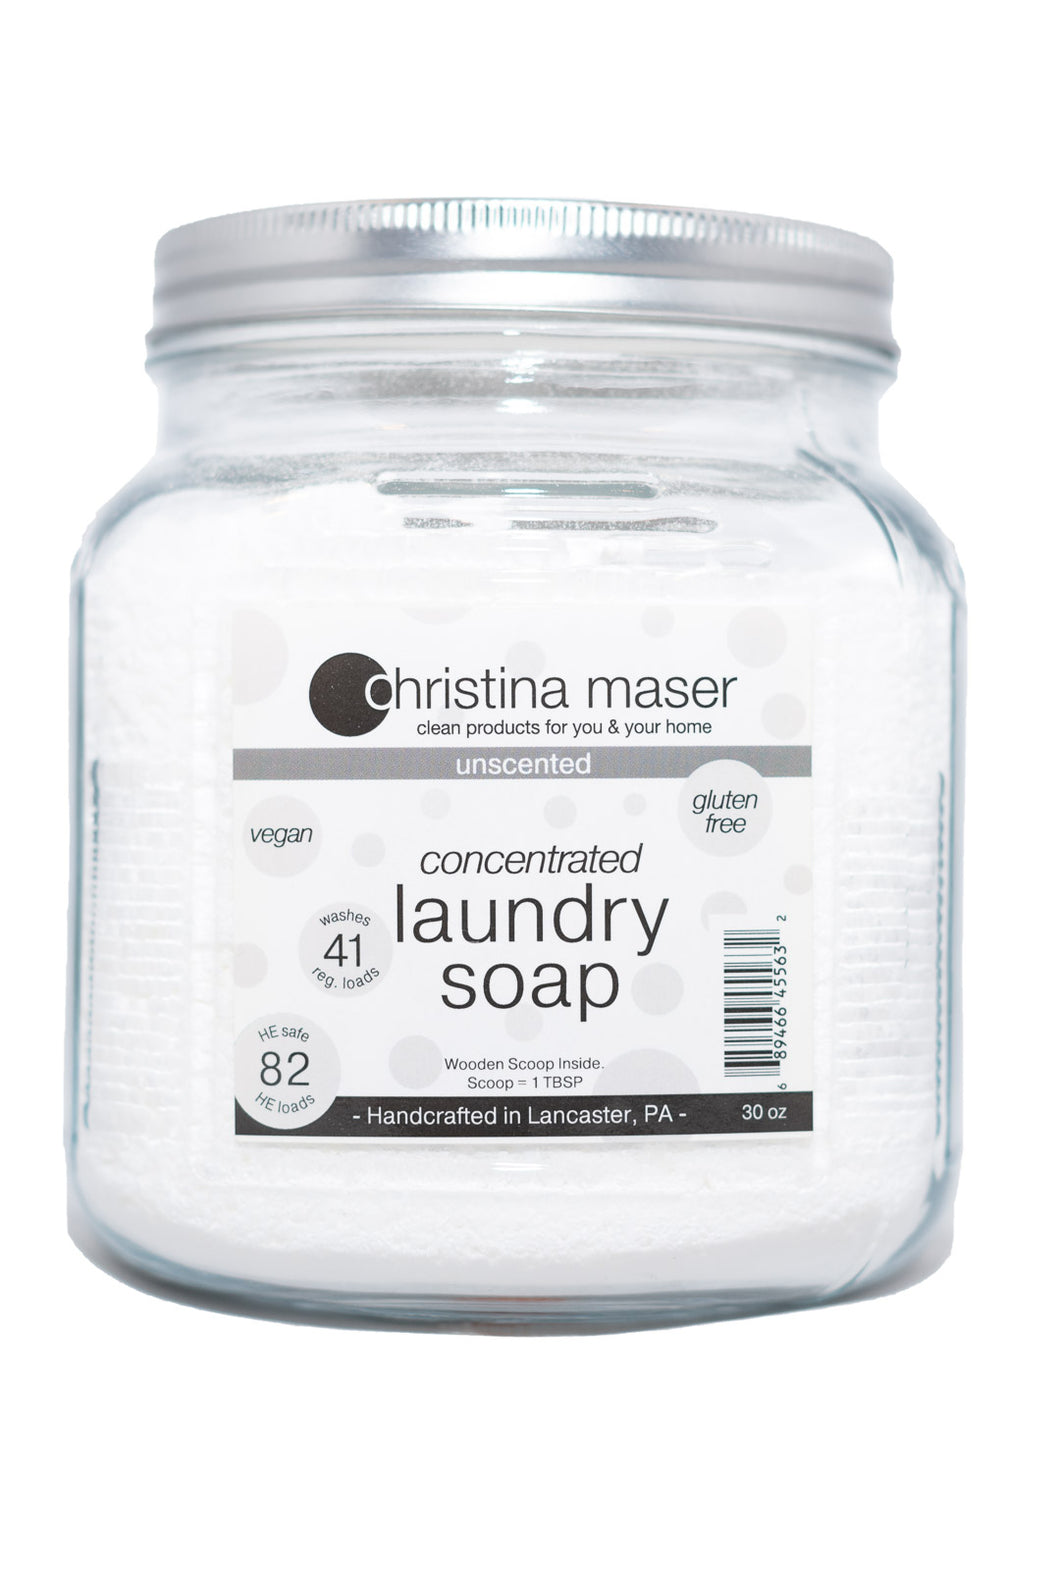 Powdered concentrated vegan laundry soap in a large glass jar. Comes with wooden scoop. Unscented and safe for baby laundry or sensitive skin. Reusable. Label is white with grey accents.